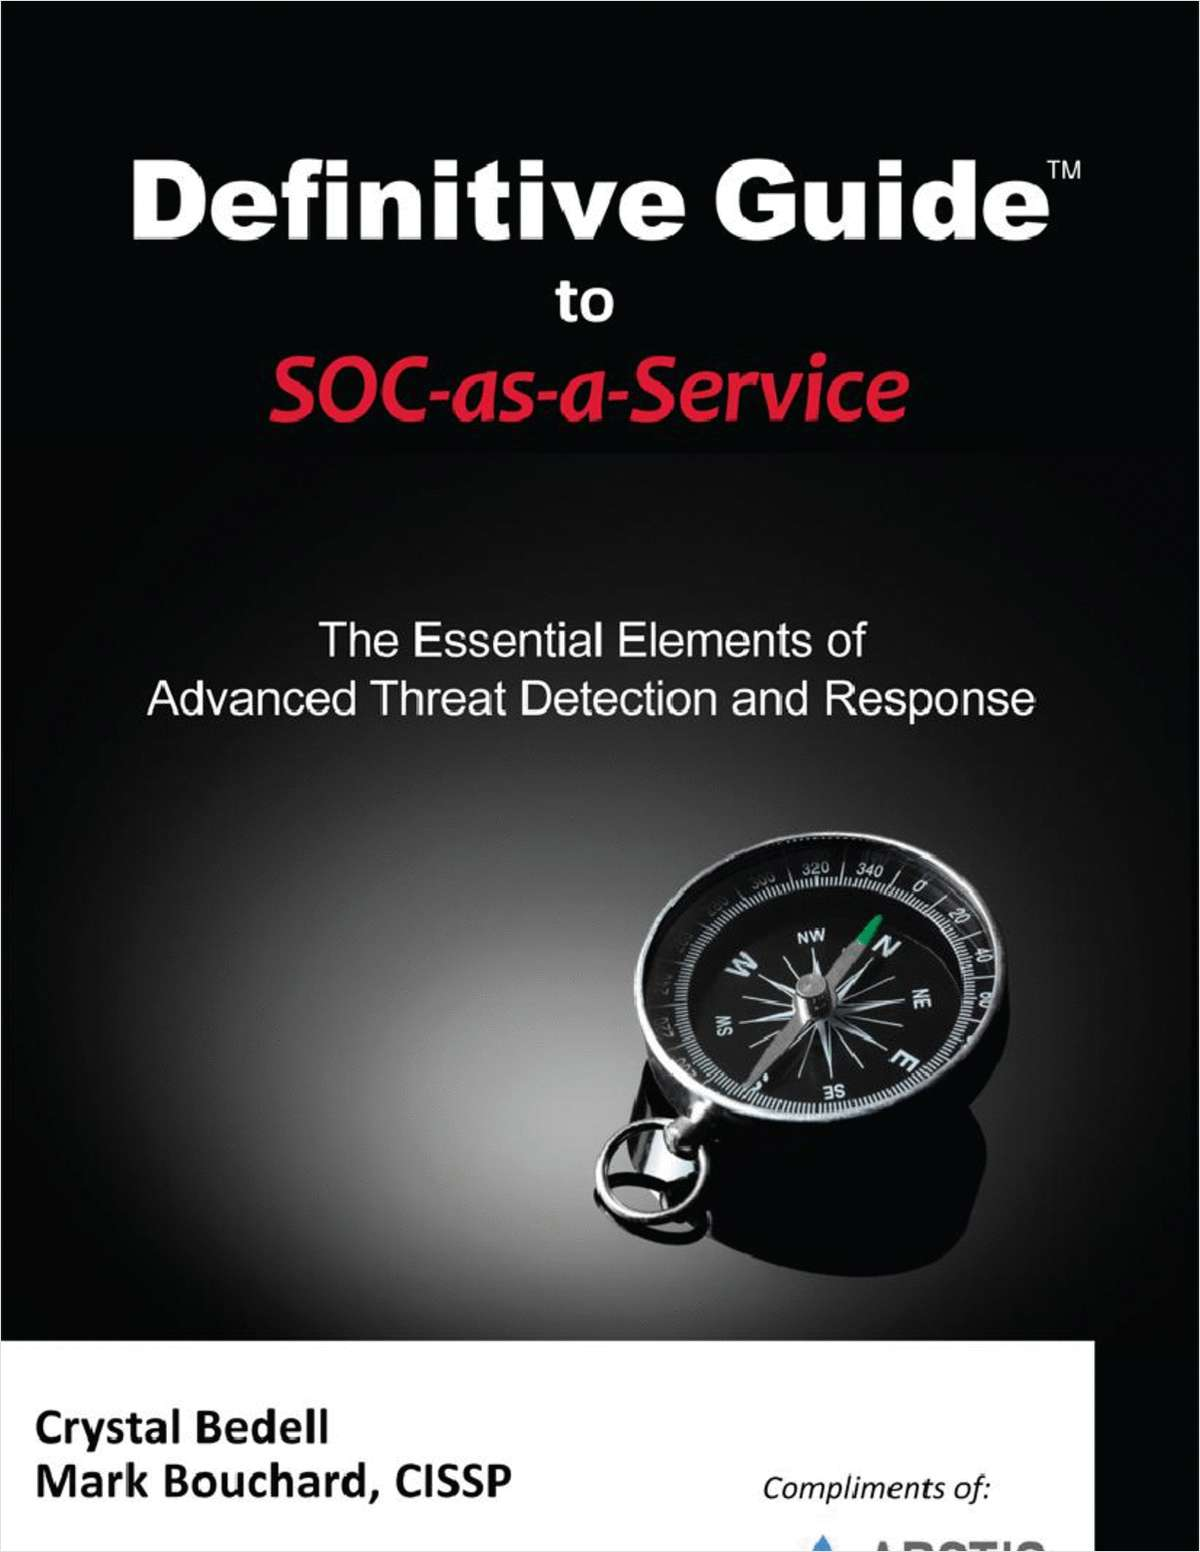 Definitive Guide to SOC-as-a-Service - The Essential Elements of Advanced Threat Detection and Response